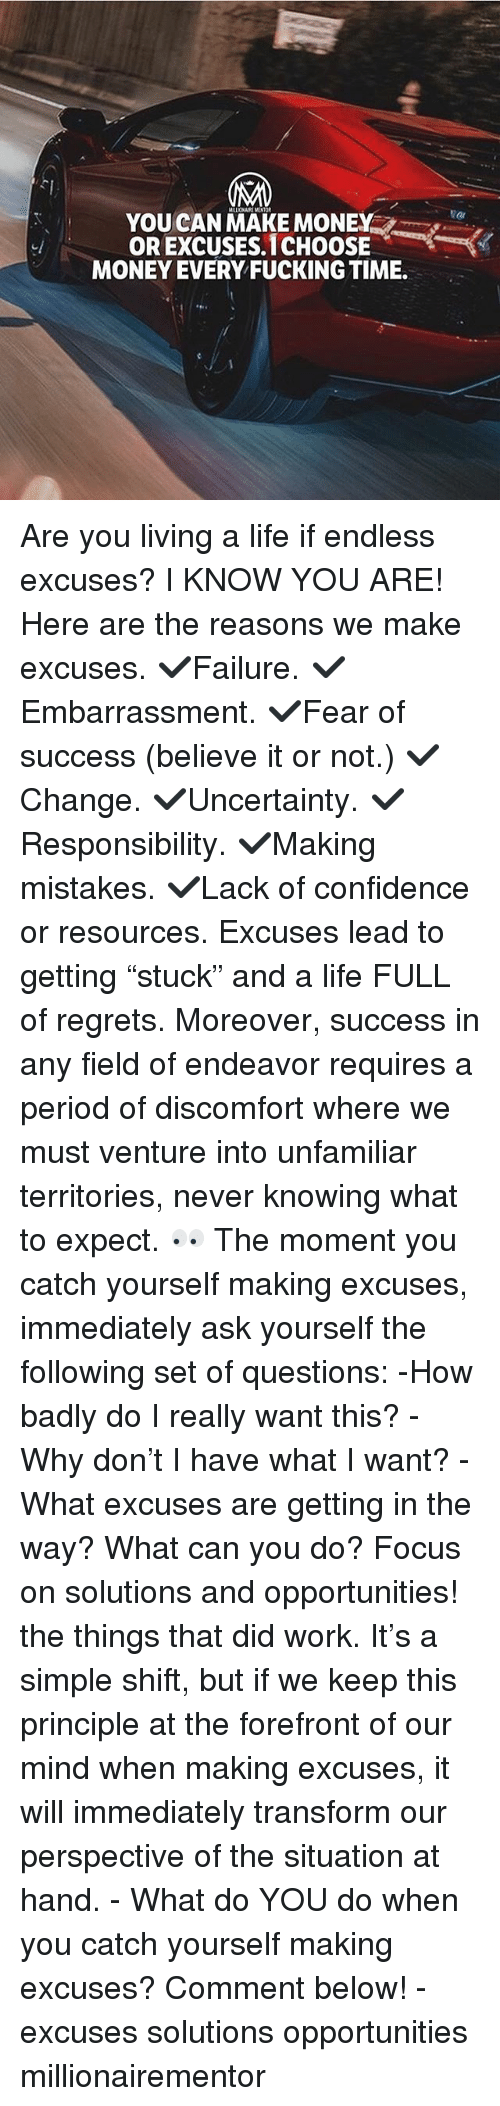 """Confidence, Fucking, and Life: YOUCAN MAKE MONEY  OR EXCUSES.1CHOOSE  MONEY EVERY FUCKING TIME. Are you living a life if endless excuses? I KNOW YOU ARE! Here are the reasons we make excuses. ✔️Failure. ✔️Embarrassment. ✔️Fear of success (believe it or not.) ✔️Change. ✔️Uncertainty. ✔️Responsibility. ✔️Making mistakes. ✔️Lack of confidence or resources. Excuses lead to getting """"stuck"""" and a life FULL of regrets. Moreover, success in any field of endeavor requires a period of discomfort where we must venture into unfamiliar territories, never knowing what to expect. 👀 The moment you catch yourself making excuses, immediately ask yourself the following set of questions: -How badly do I really want this? -Why don't I have what I want? -What excuses are getting in the way? What can you do? Focus on solutions and opportunities! the things that did work. It's a simple shift, but if we keep this principle at the forefront of our mind when making excuses, it will immediately transform our perspective of the situation at hand. - What do YOU do when you catch yourself making excuses? Comment below! - excuses solutions opportunities millionairementor"""